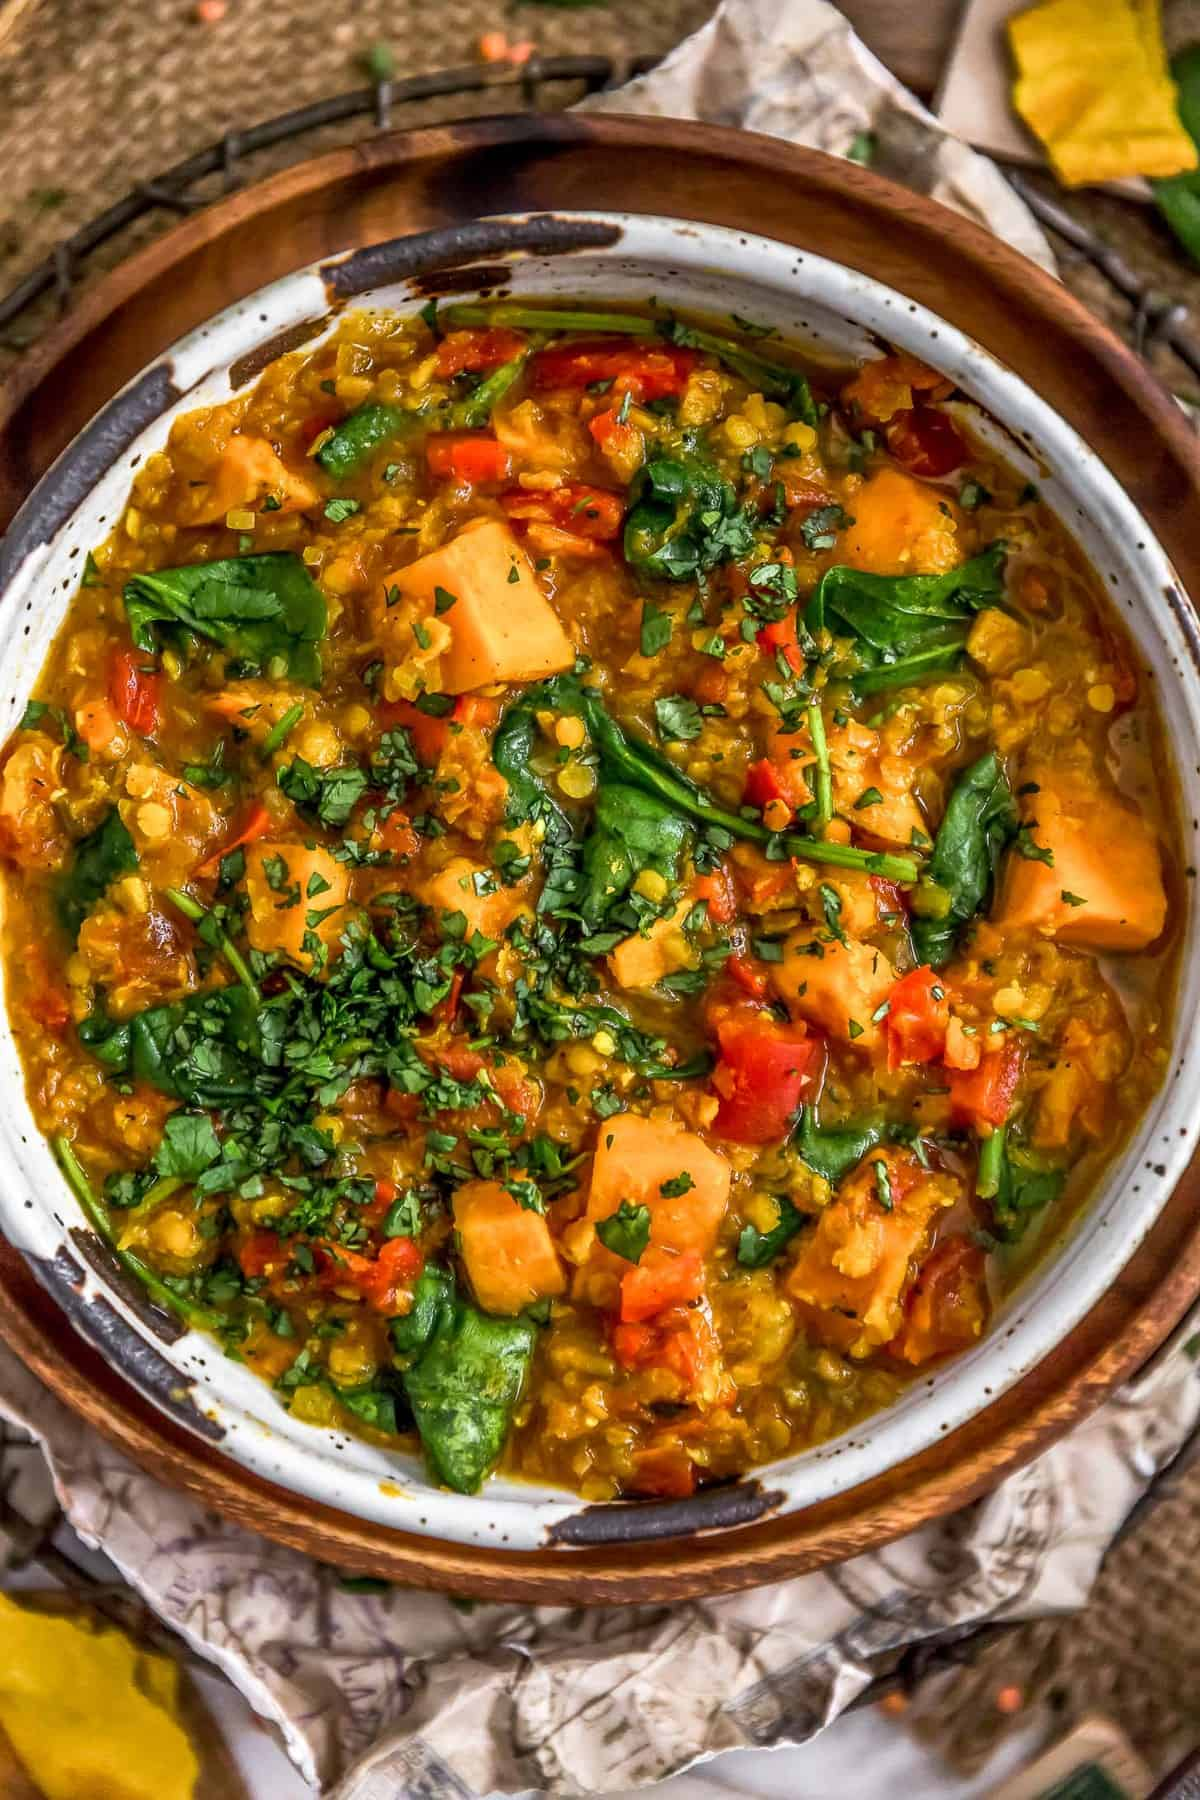 Bowl of Curried Red Lentil and Sweet Potato Stew